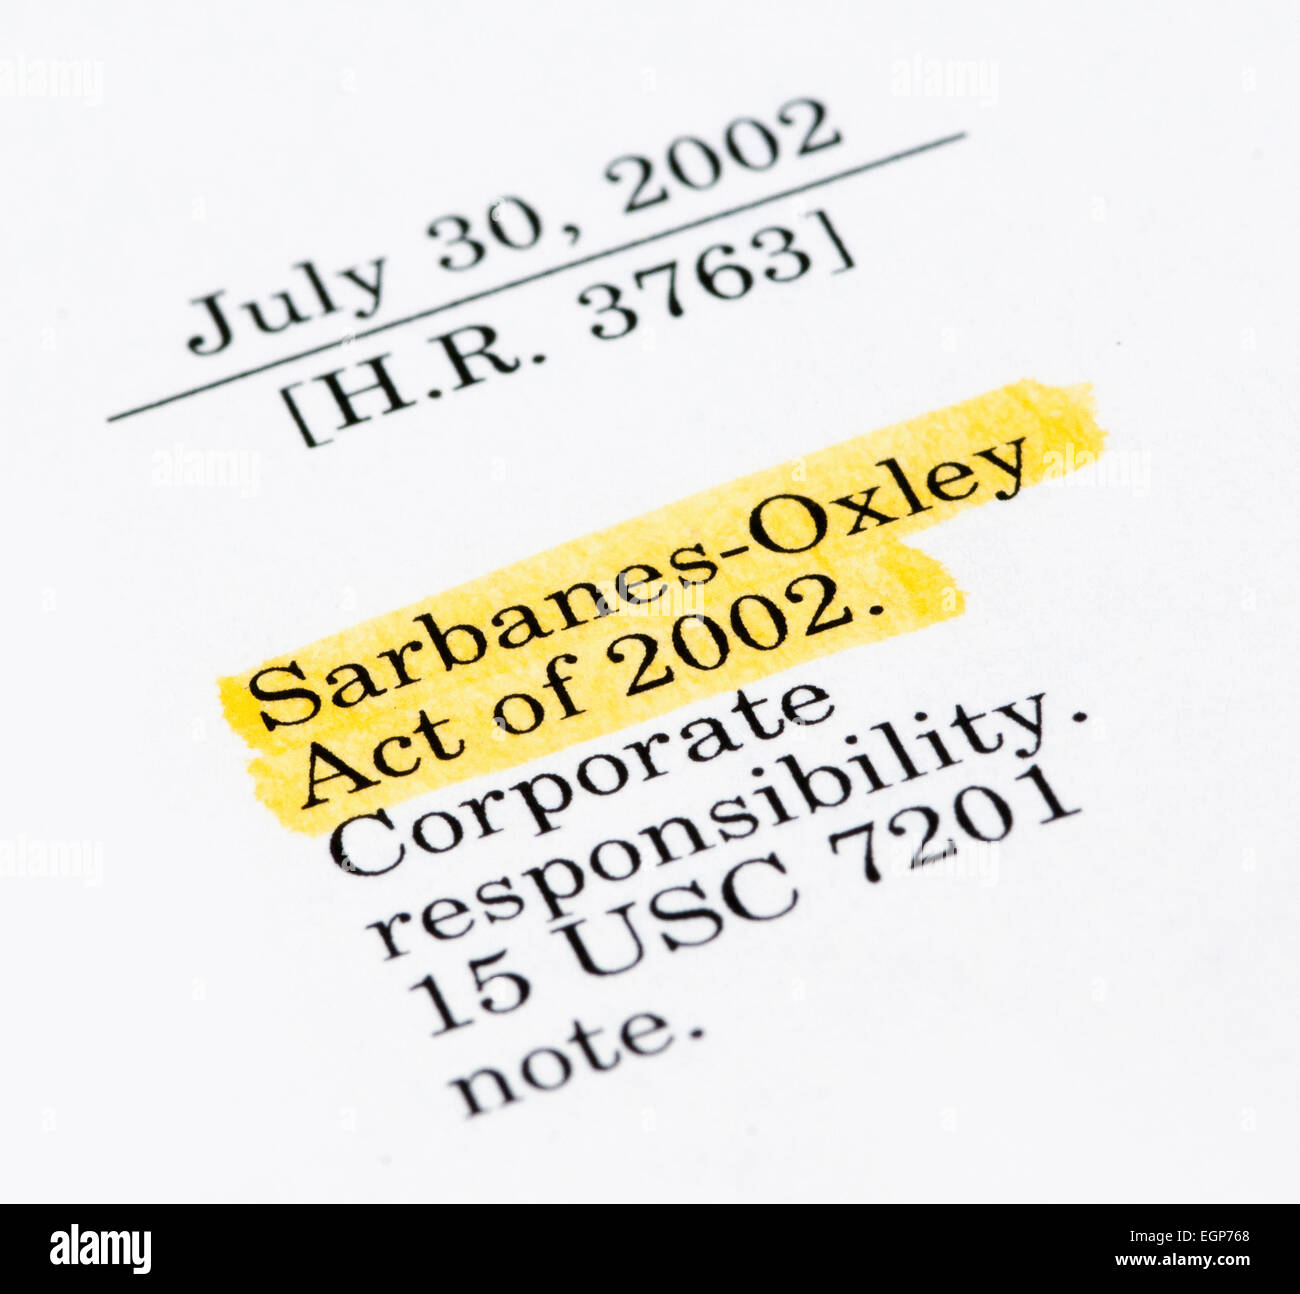 Sarbanes-Oxley Act of 2002, highlighted in the legal document - Stock Image